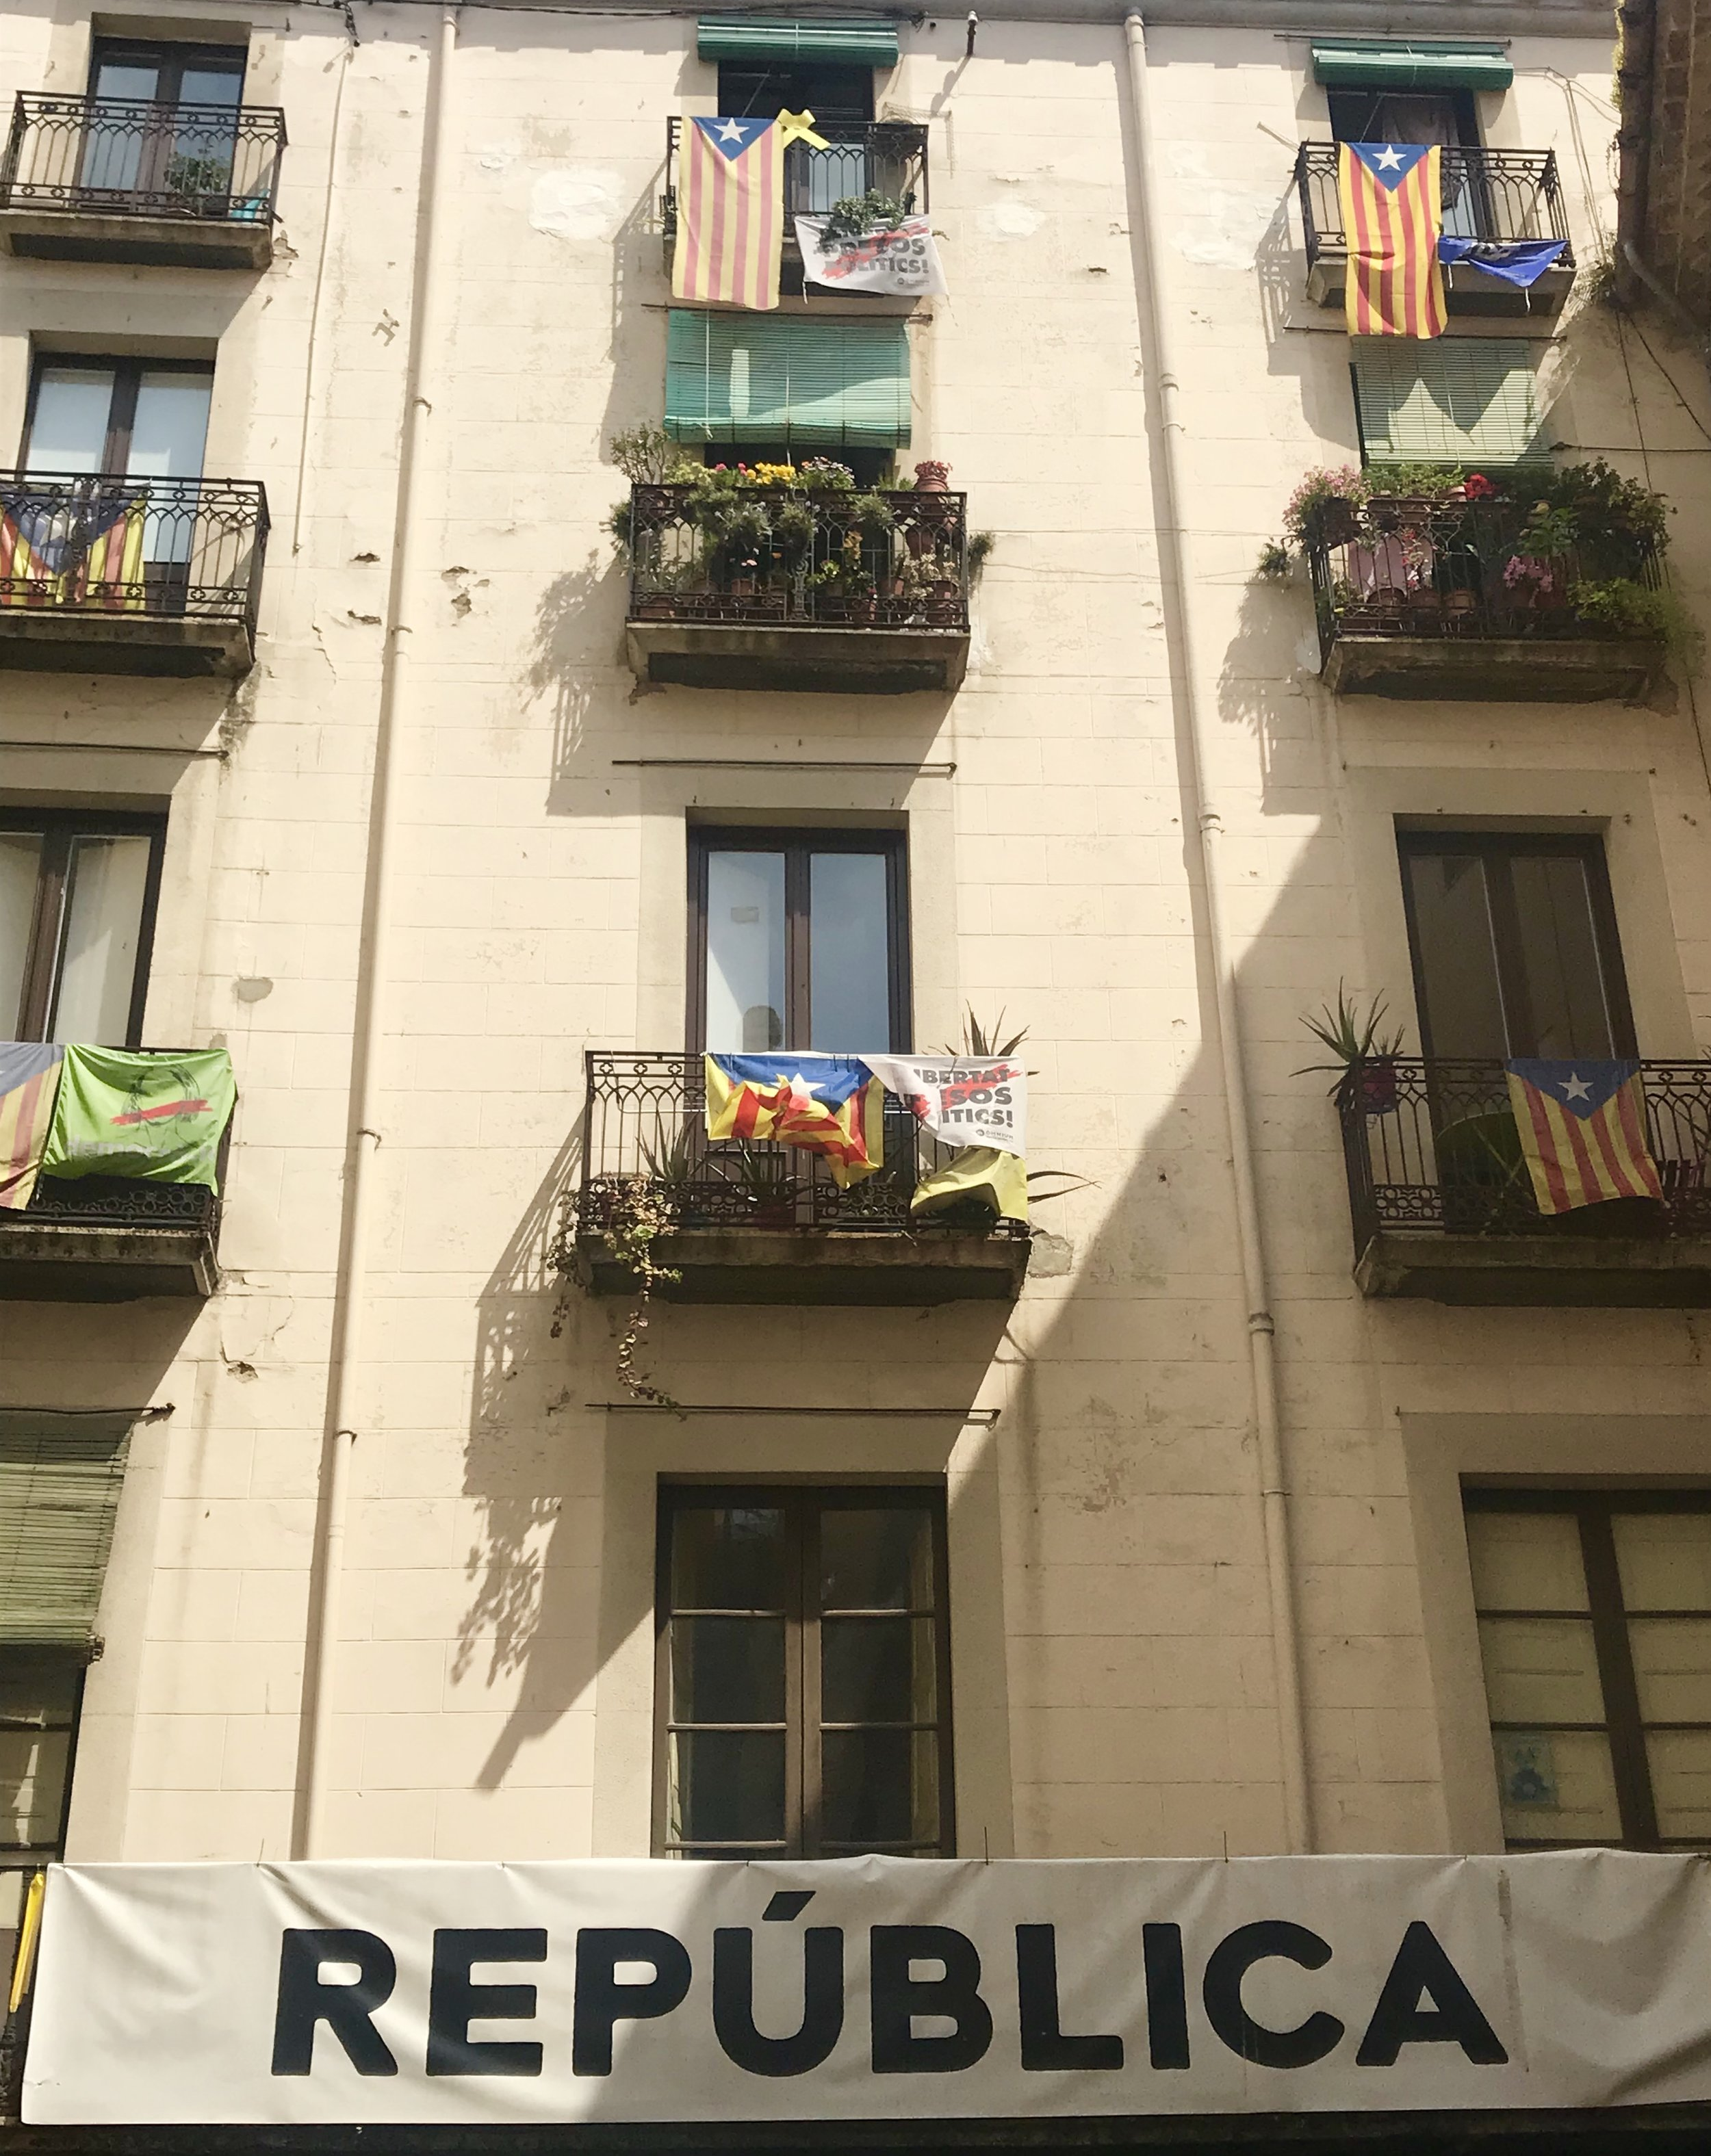 A rather large statement in the historic center of Girona. We are in the heart of the Catalan independence movement.